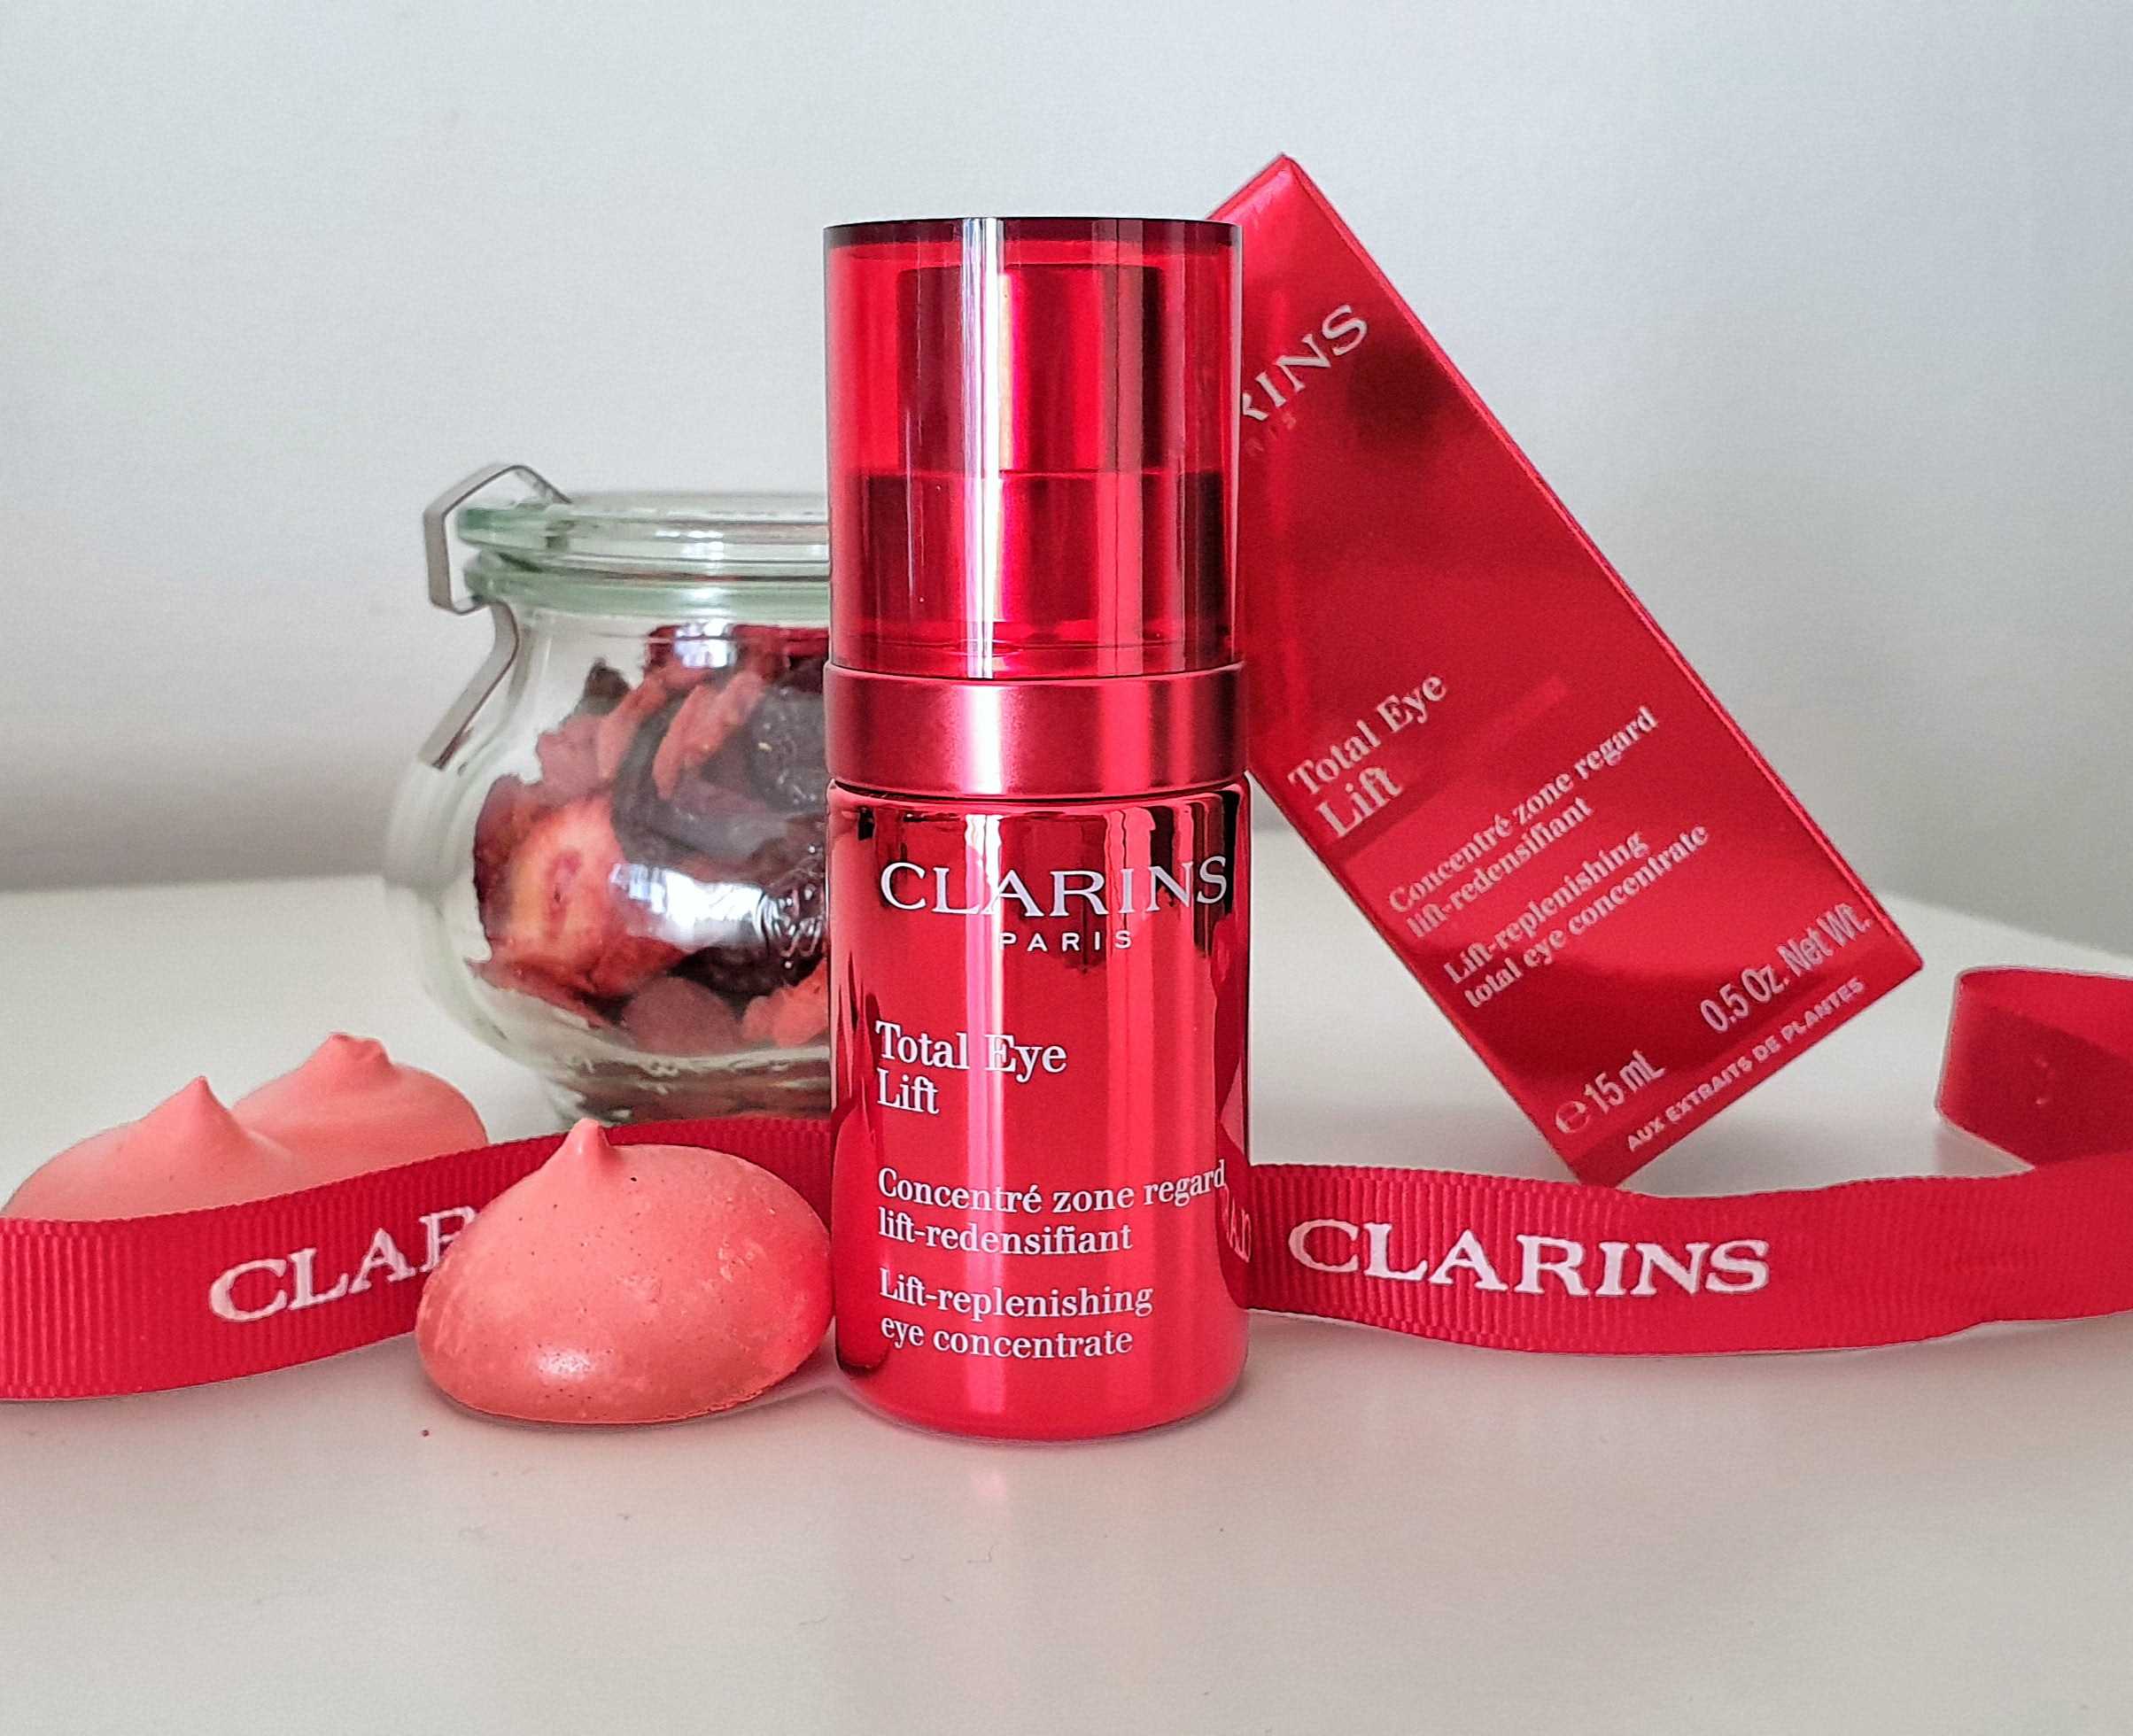 Total Eye Lift Clarins